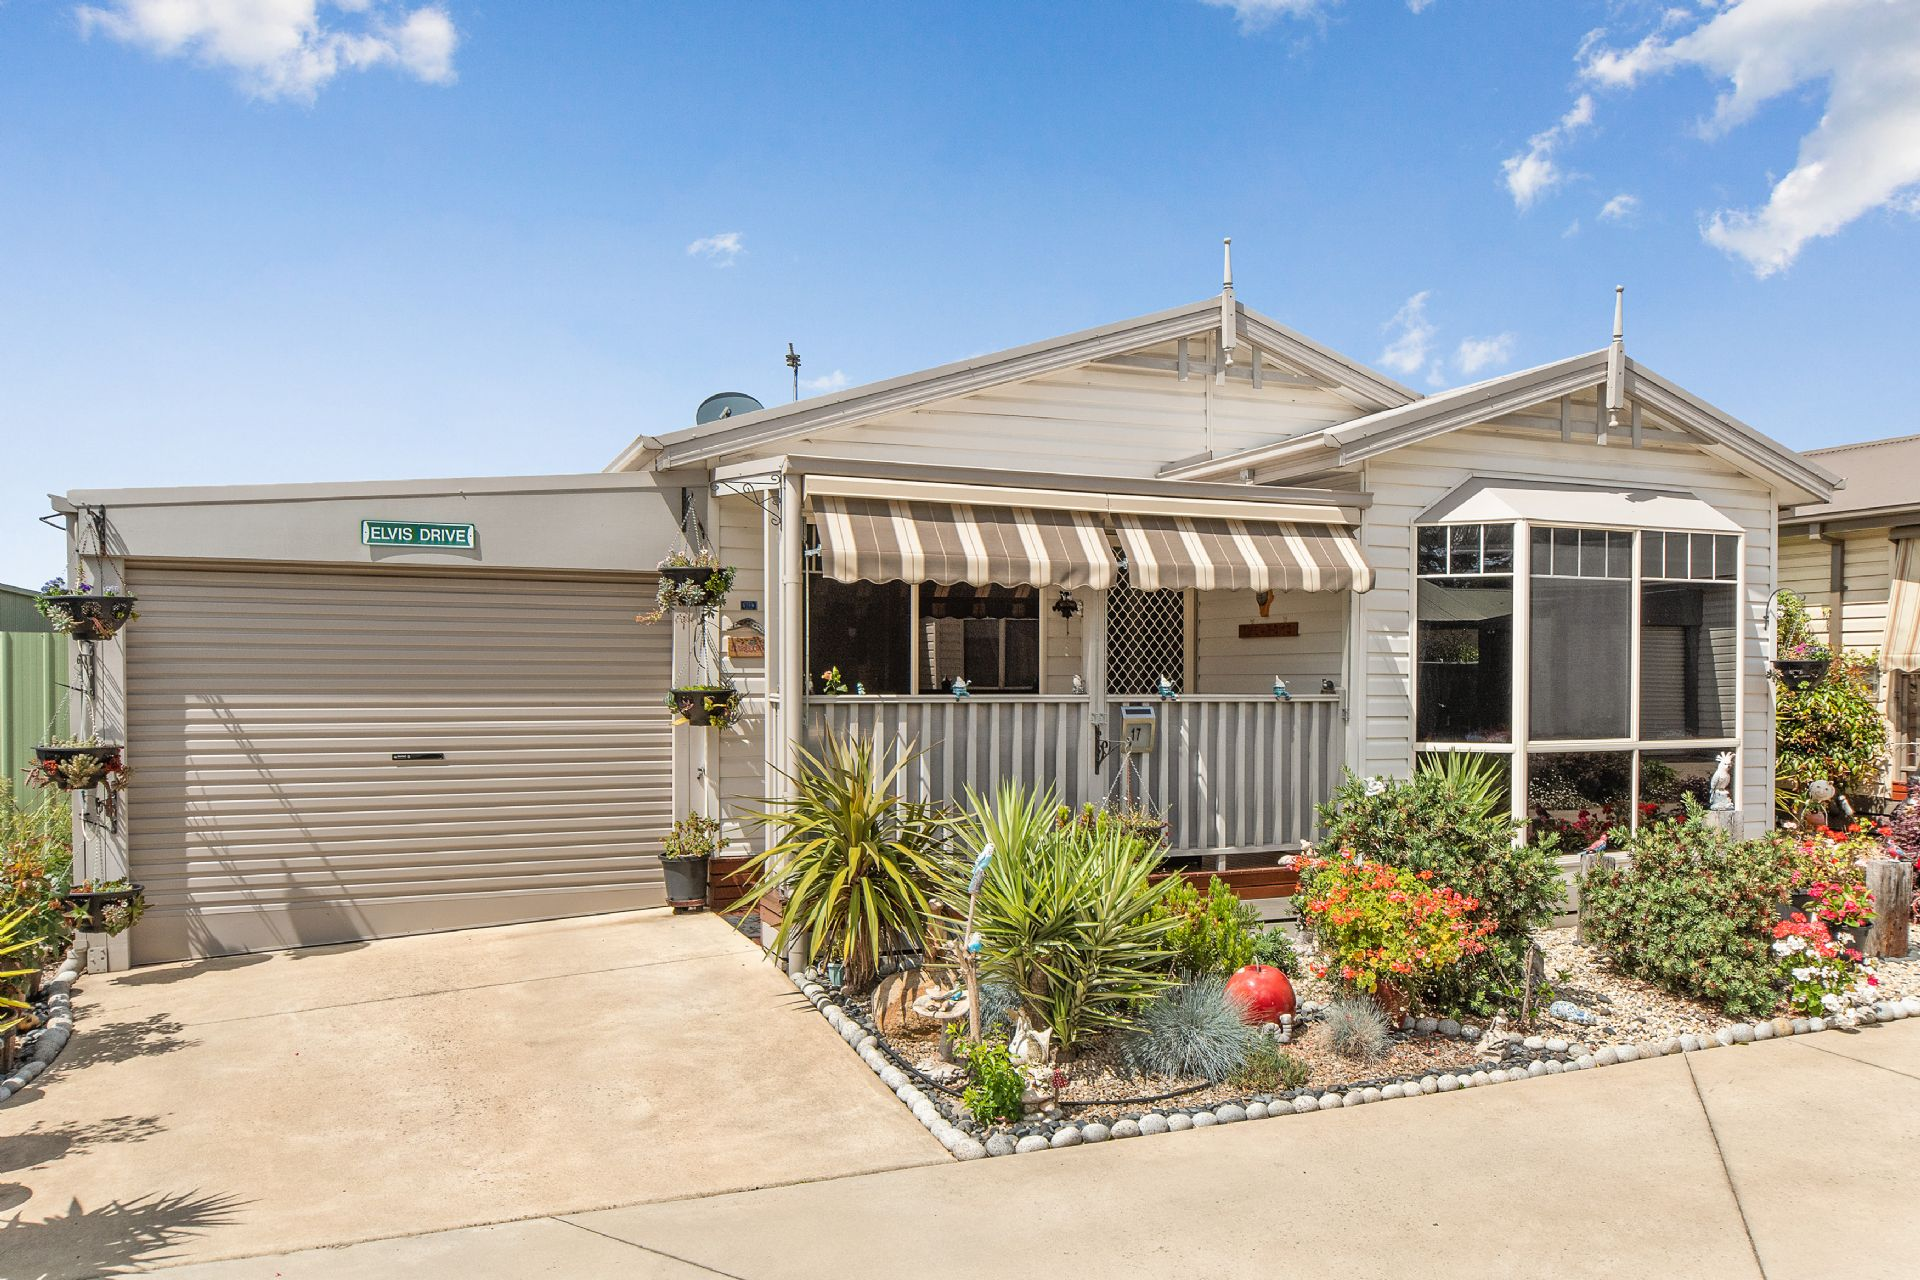 180/249 High Street, HASTINGS, VIC, 3915 - Image